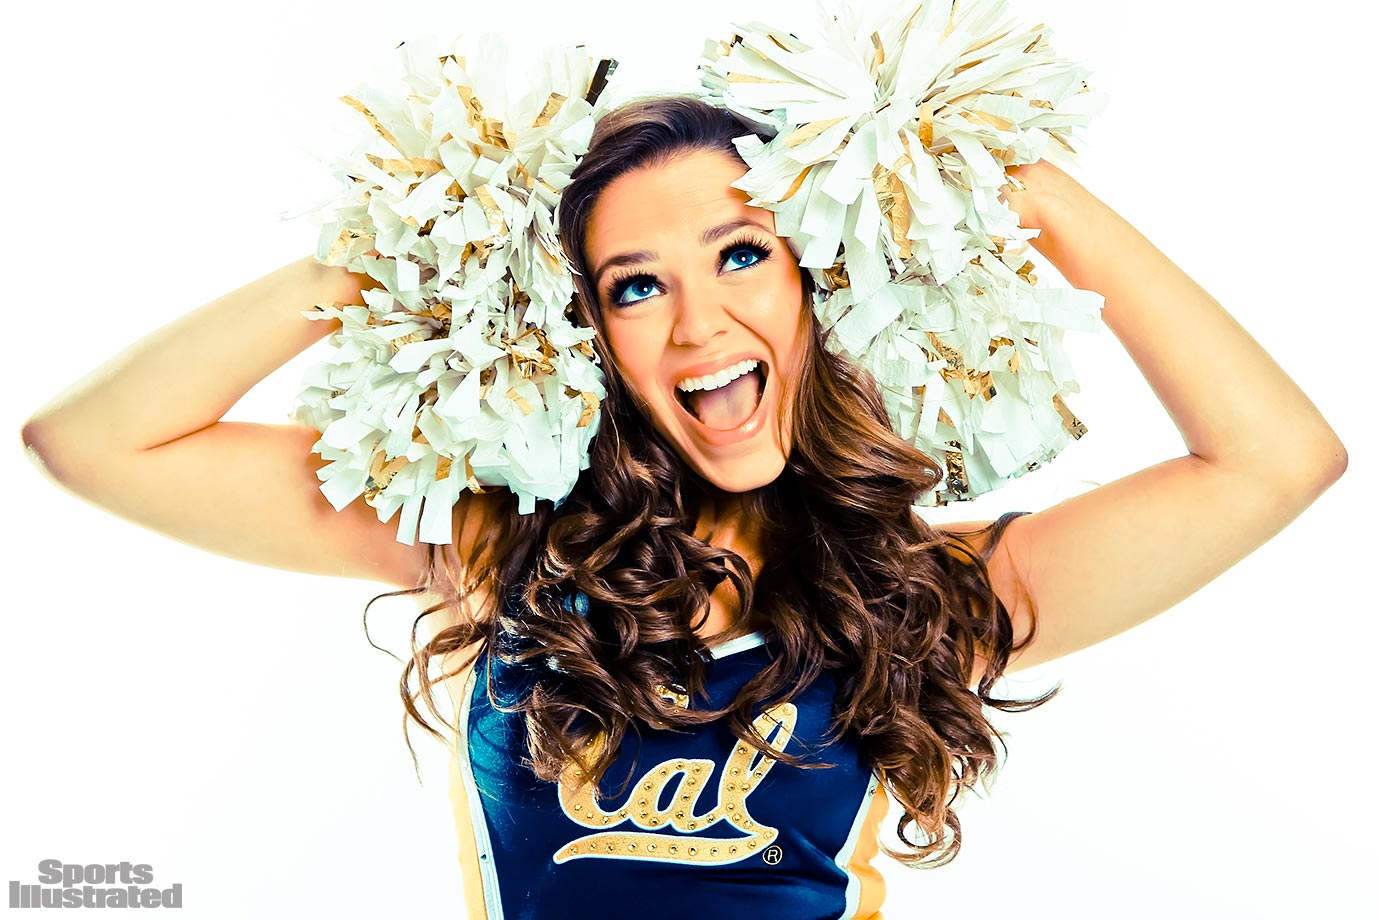 Meet Anne of the Cal Dance Team, who met ABBA at a Starbucks in New York City, was hit by a foul ball at a baseball game, and has been to 14 countries!